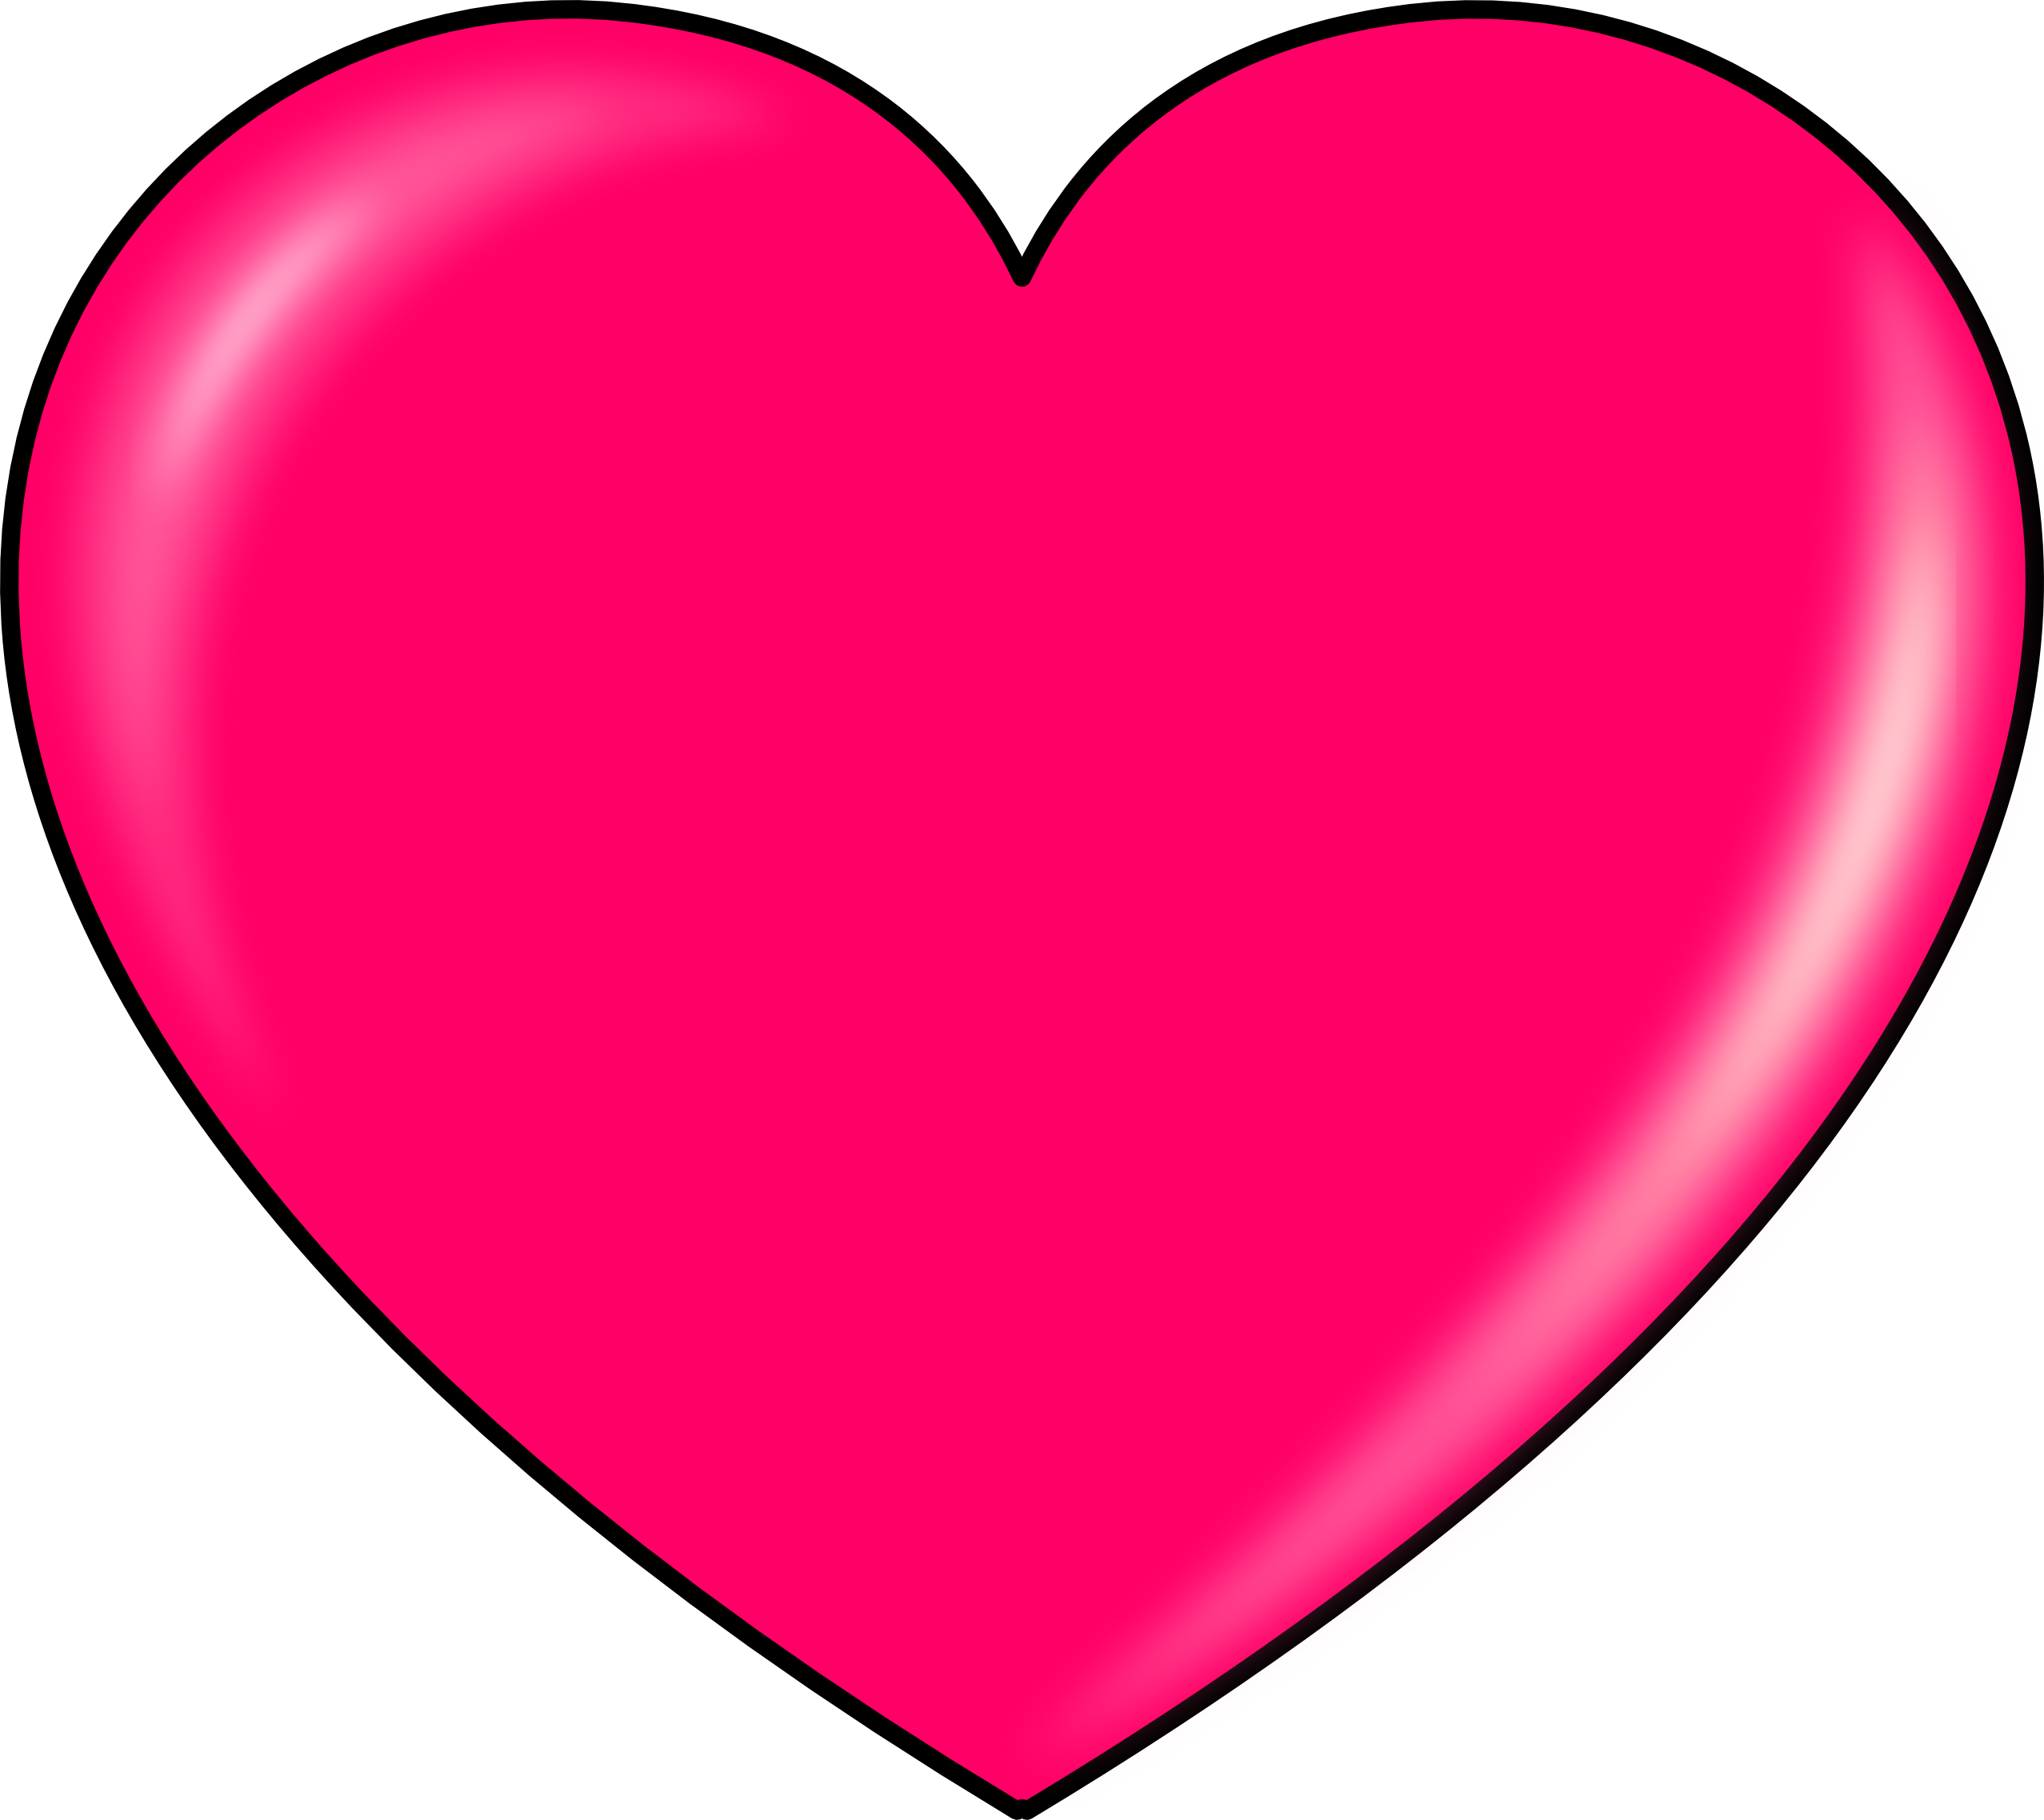 Beautiful heart clipart free download - Pink Love Heart PNG HD